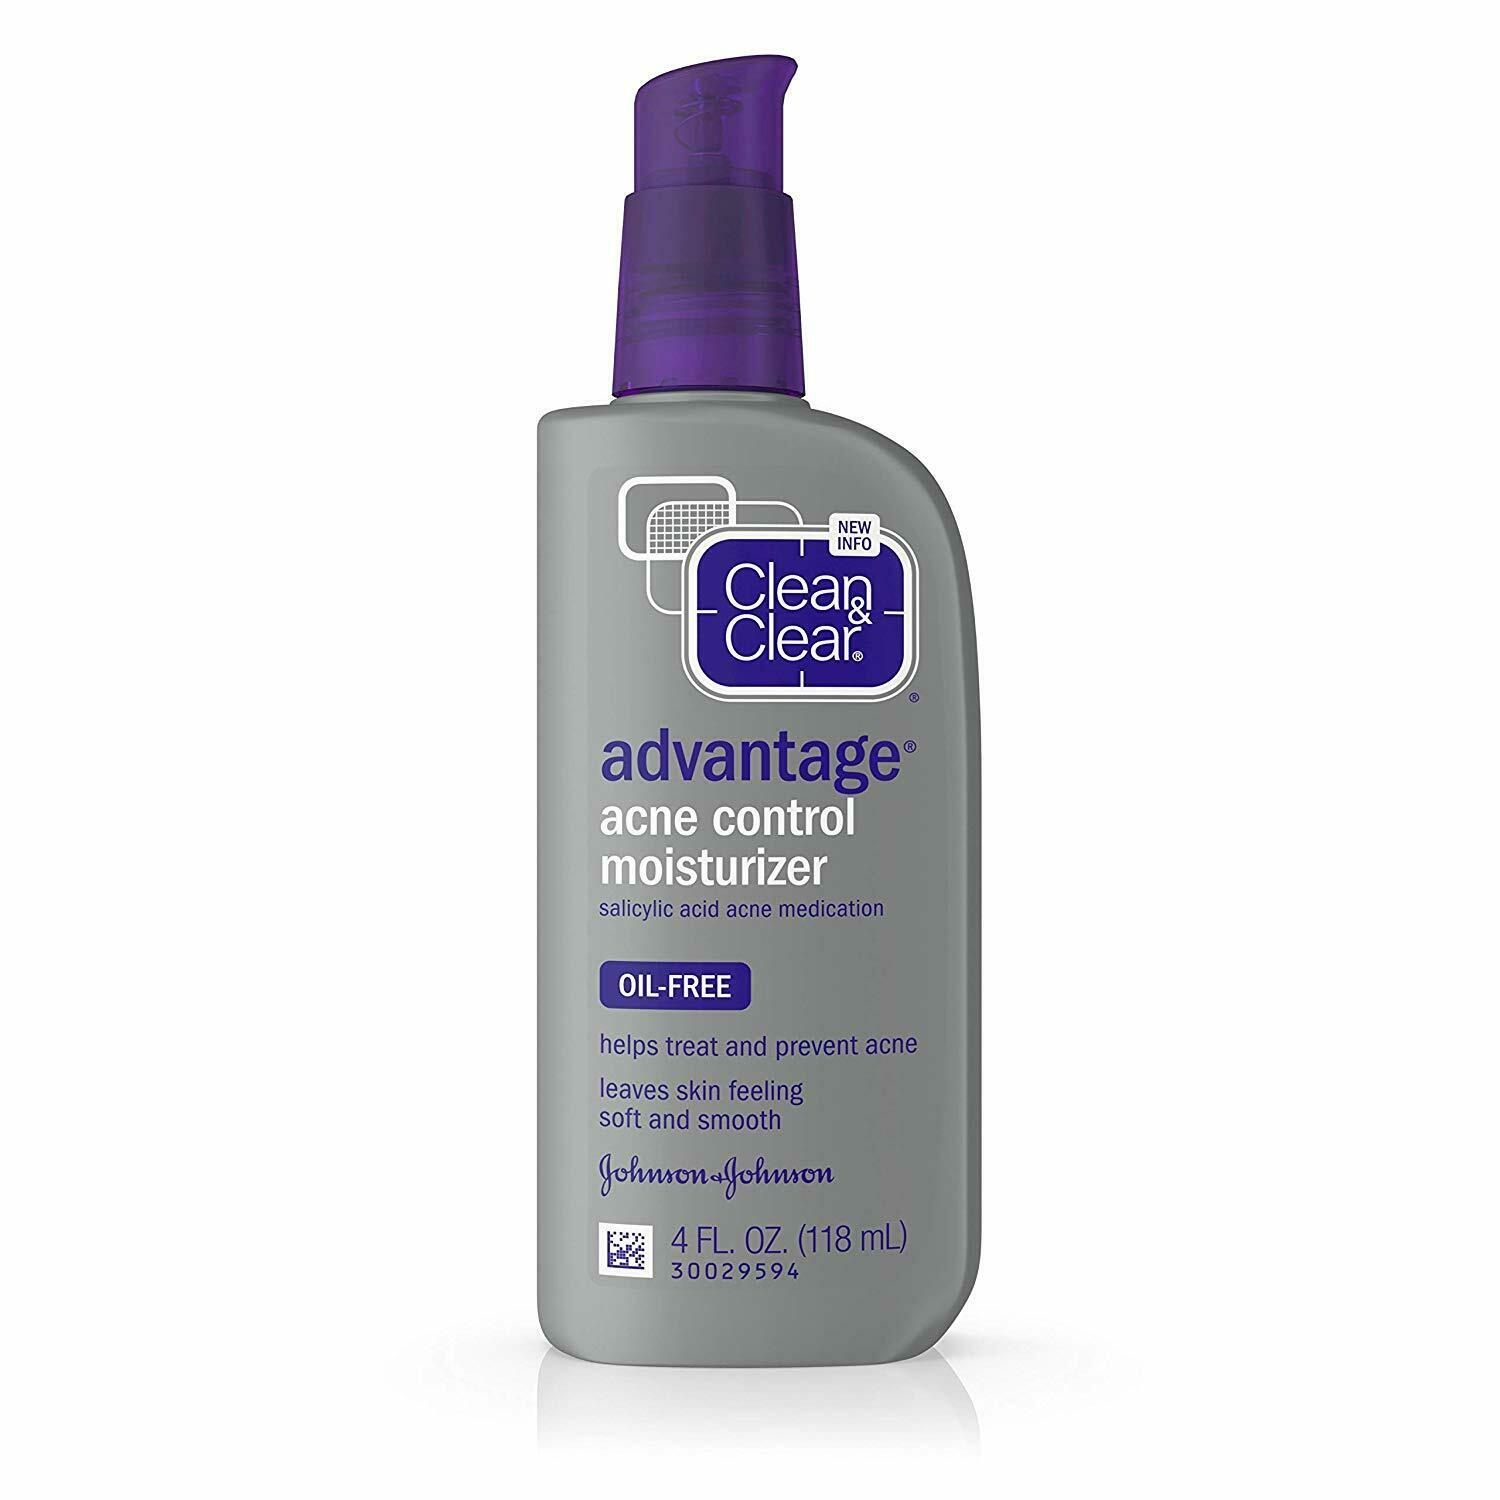 Clean & Clear ADVANTAGE Acne Control MOISTURIZER 4oz Oil-Fre